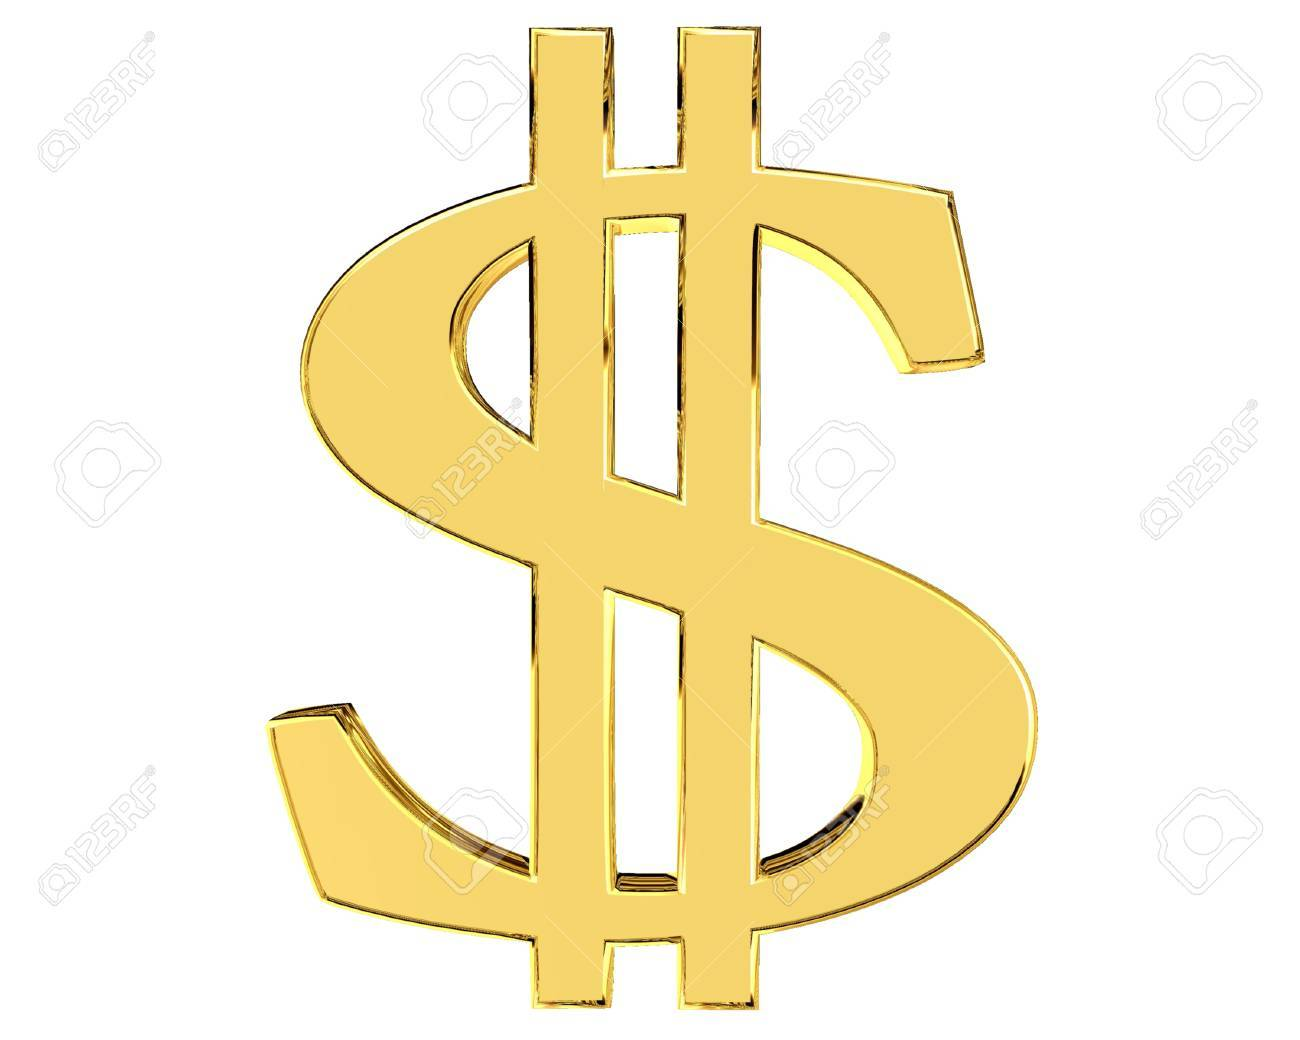 Gold dollar currency symbol on white background stock photo gold dollar currency symbol on white background stock photo 75505086 biocorpaavc